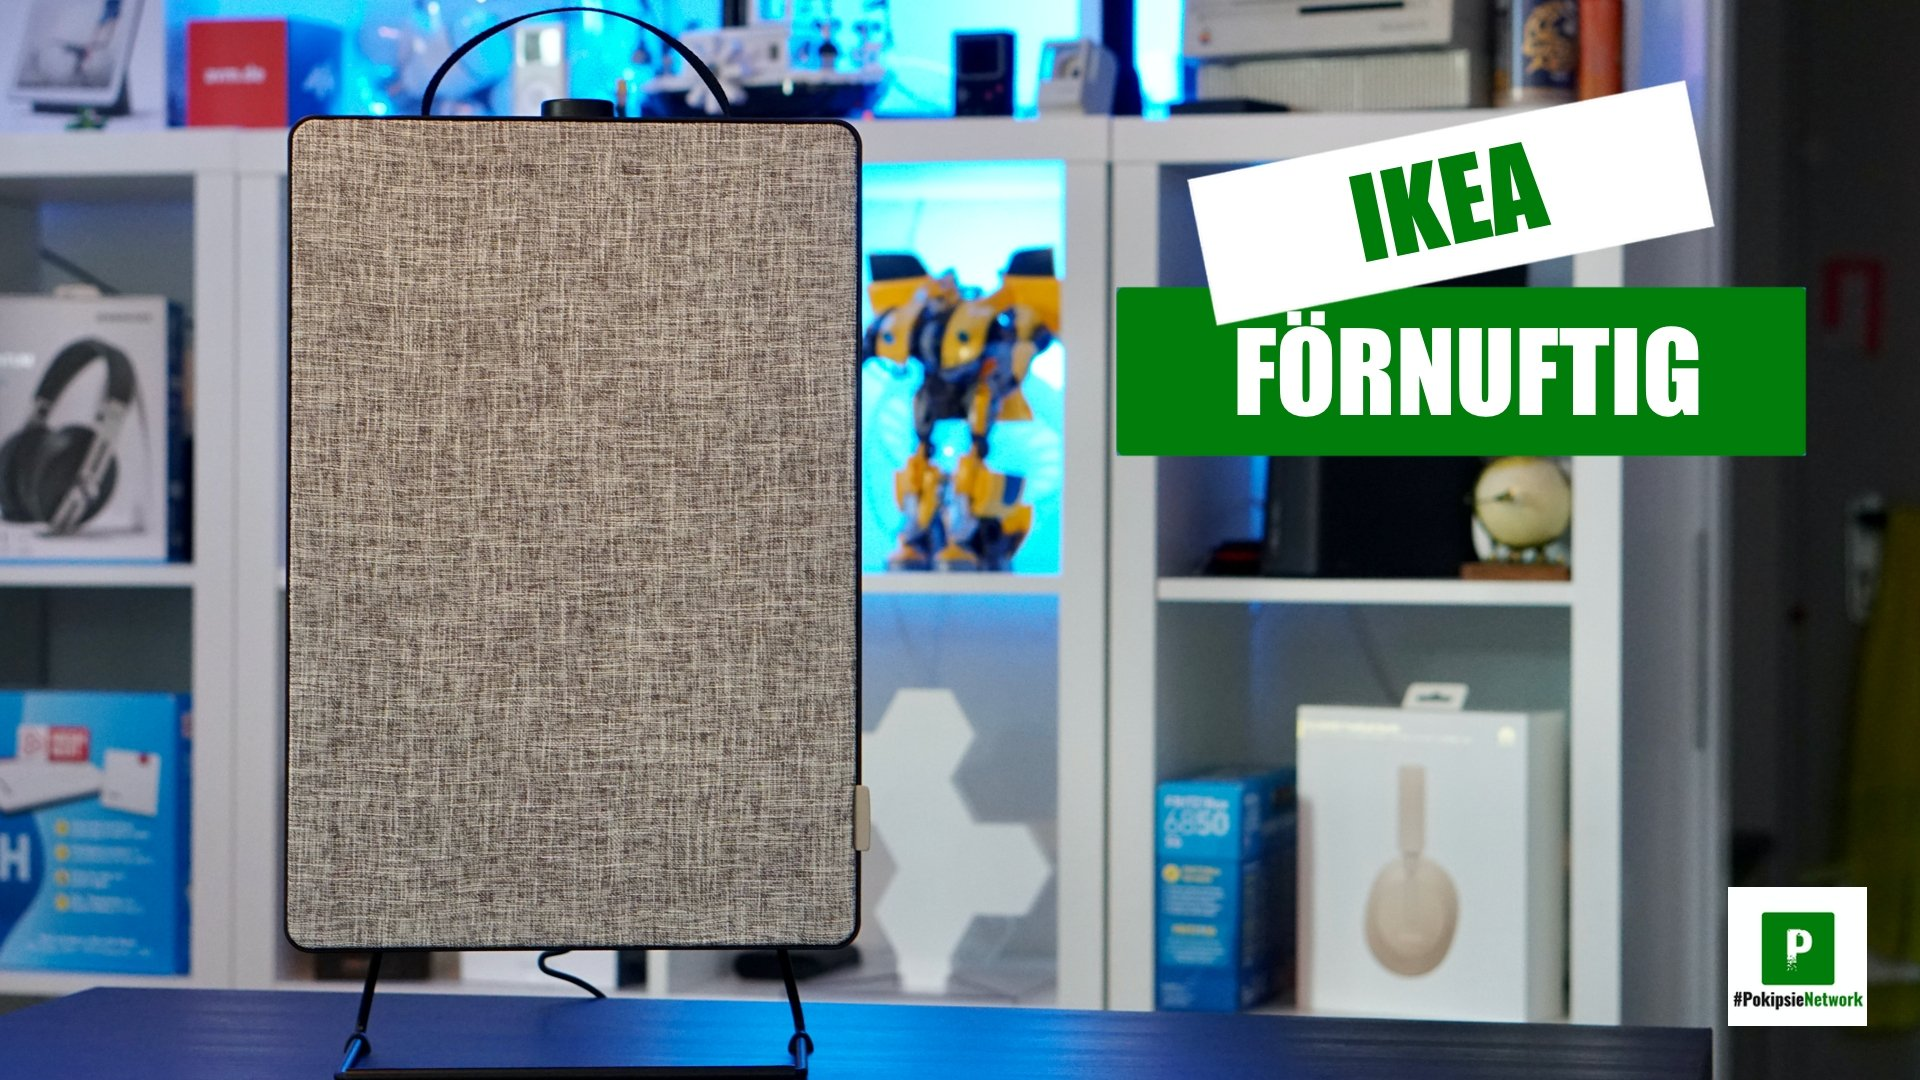 Video – IKEA FÖRNUFTIG